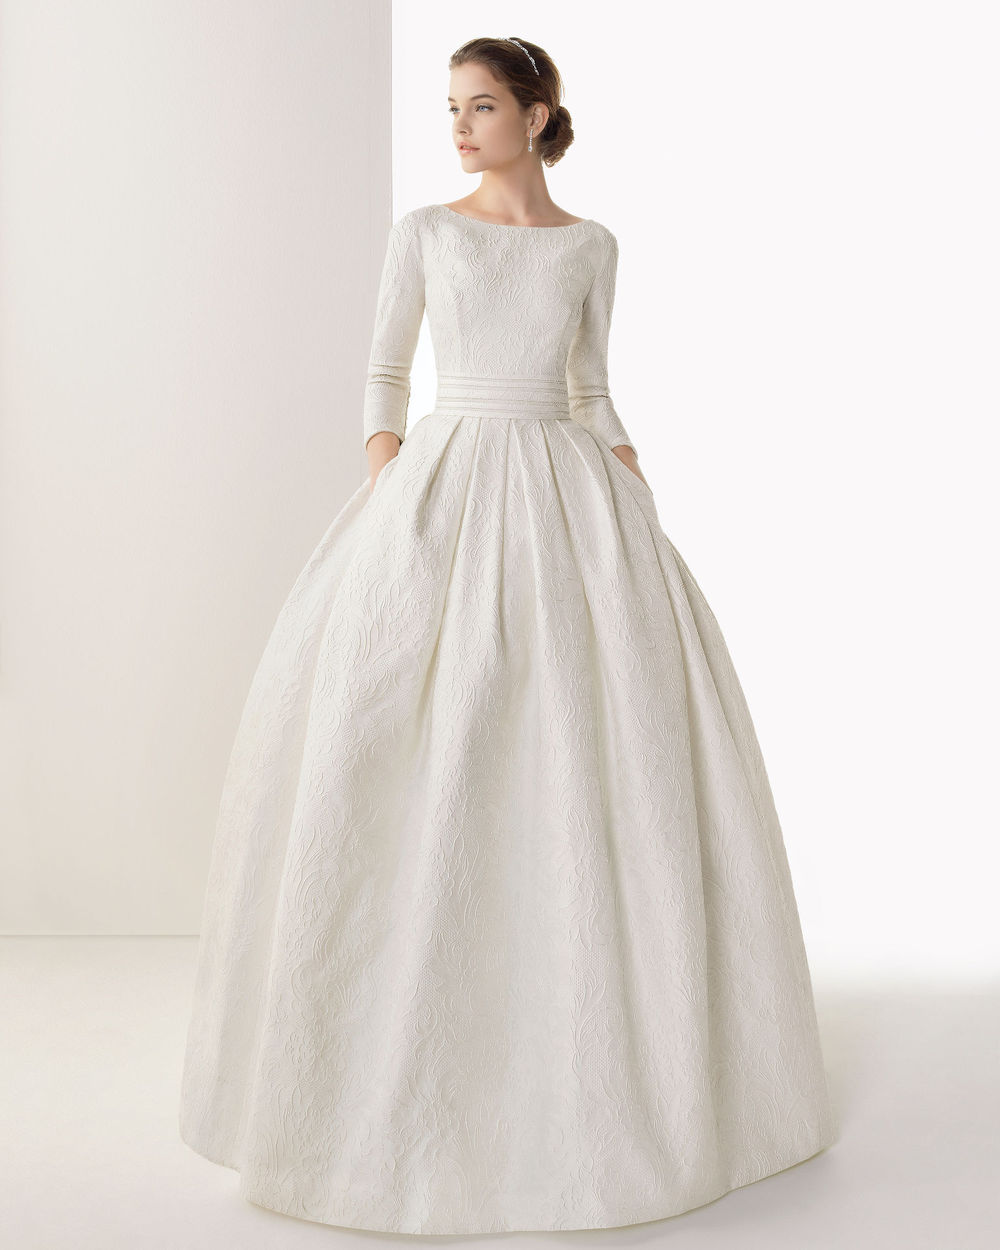 Wedding Dress With Pockets: Wedding Dresses With Sleeves And Pockets